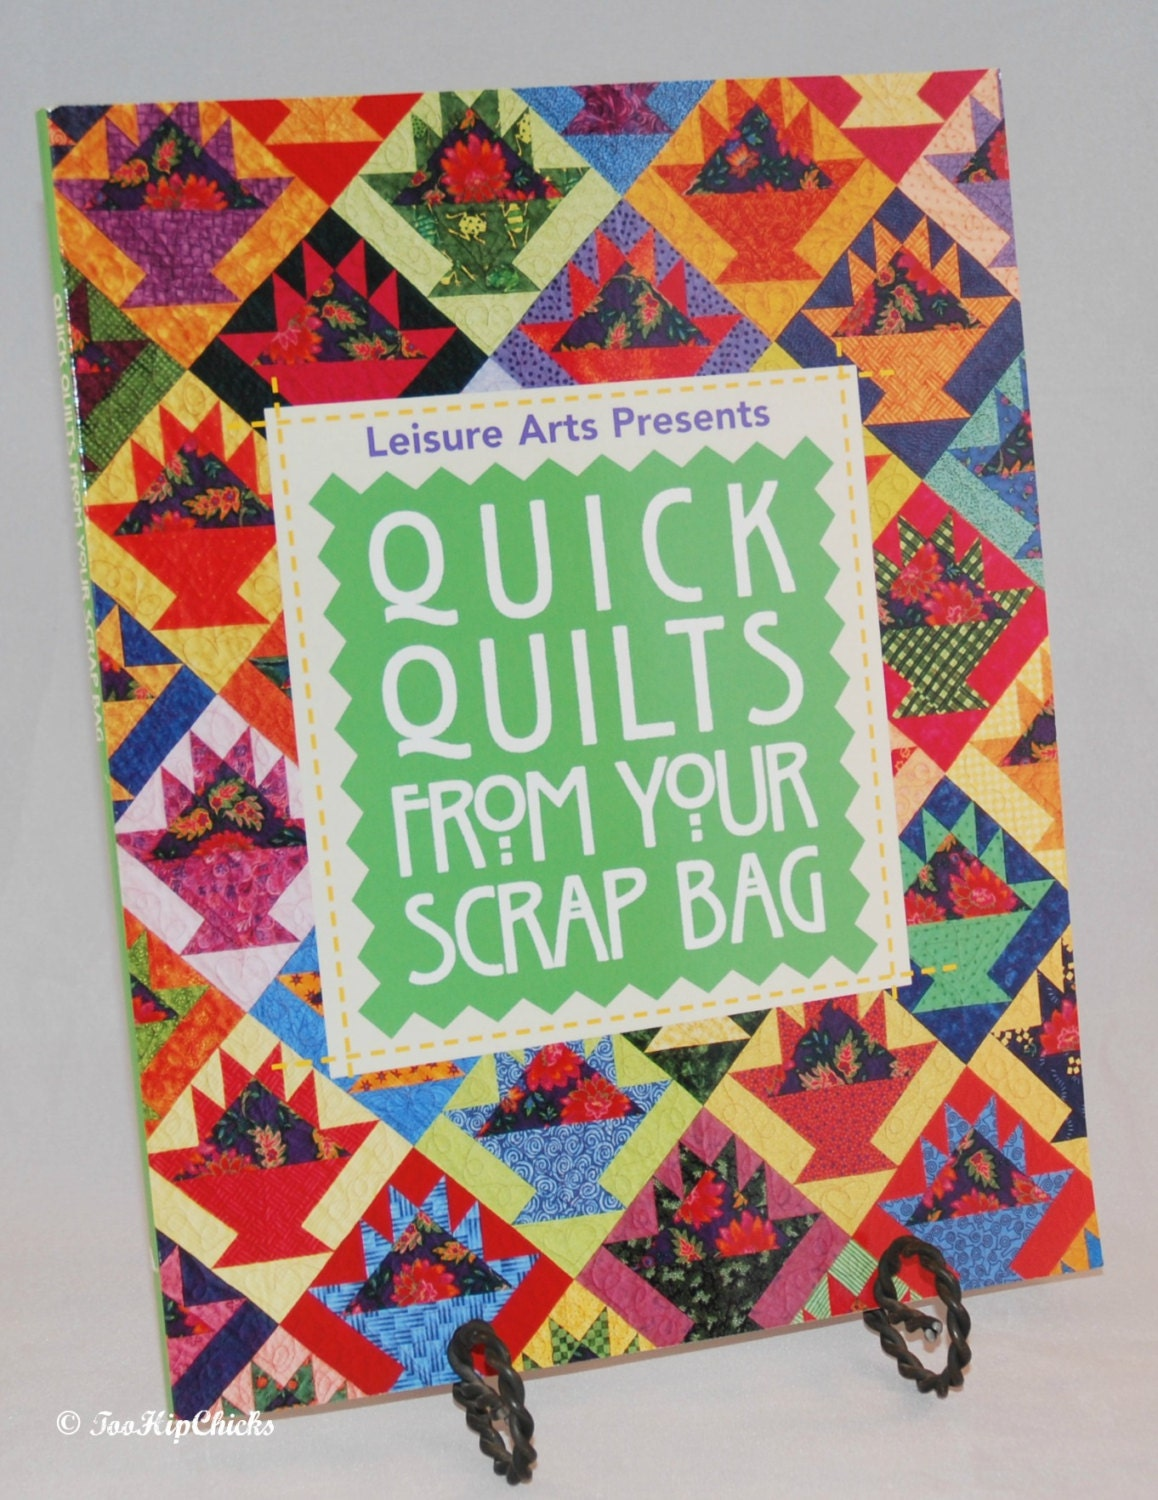 p quilts quick quilt books junejuly mccalls mccall july shop june s htm magazines